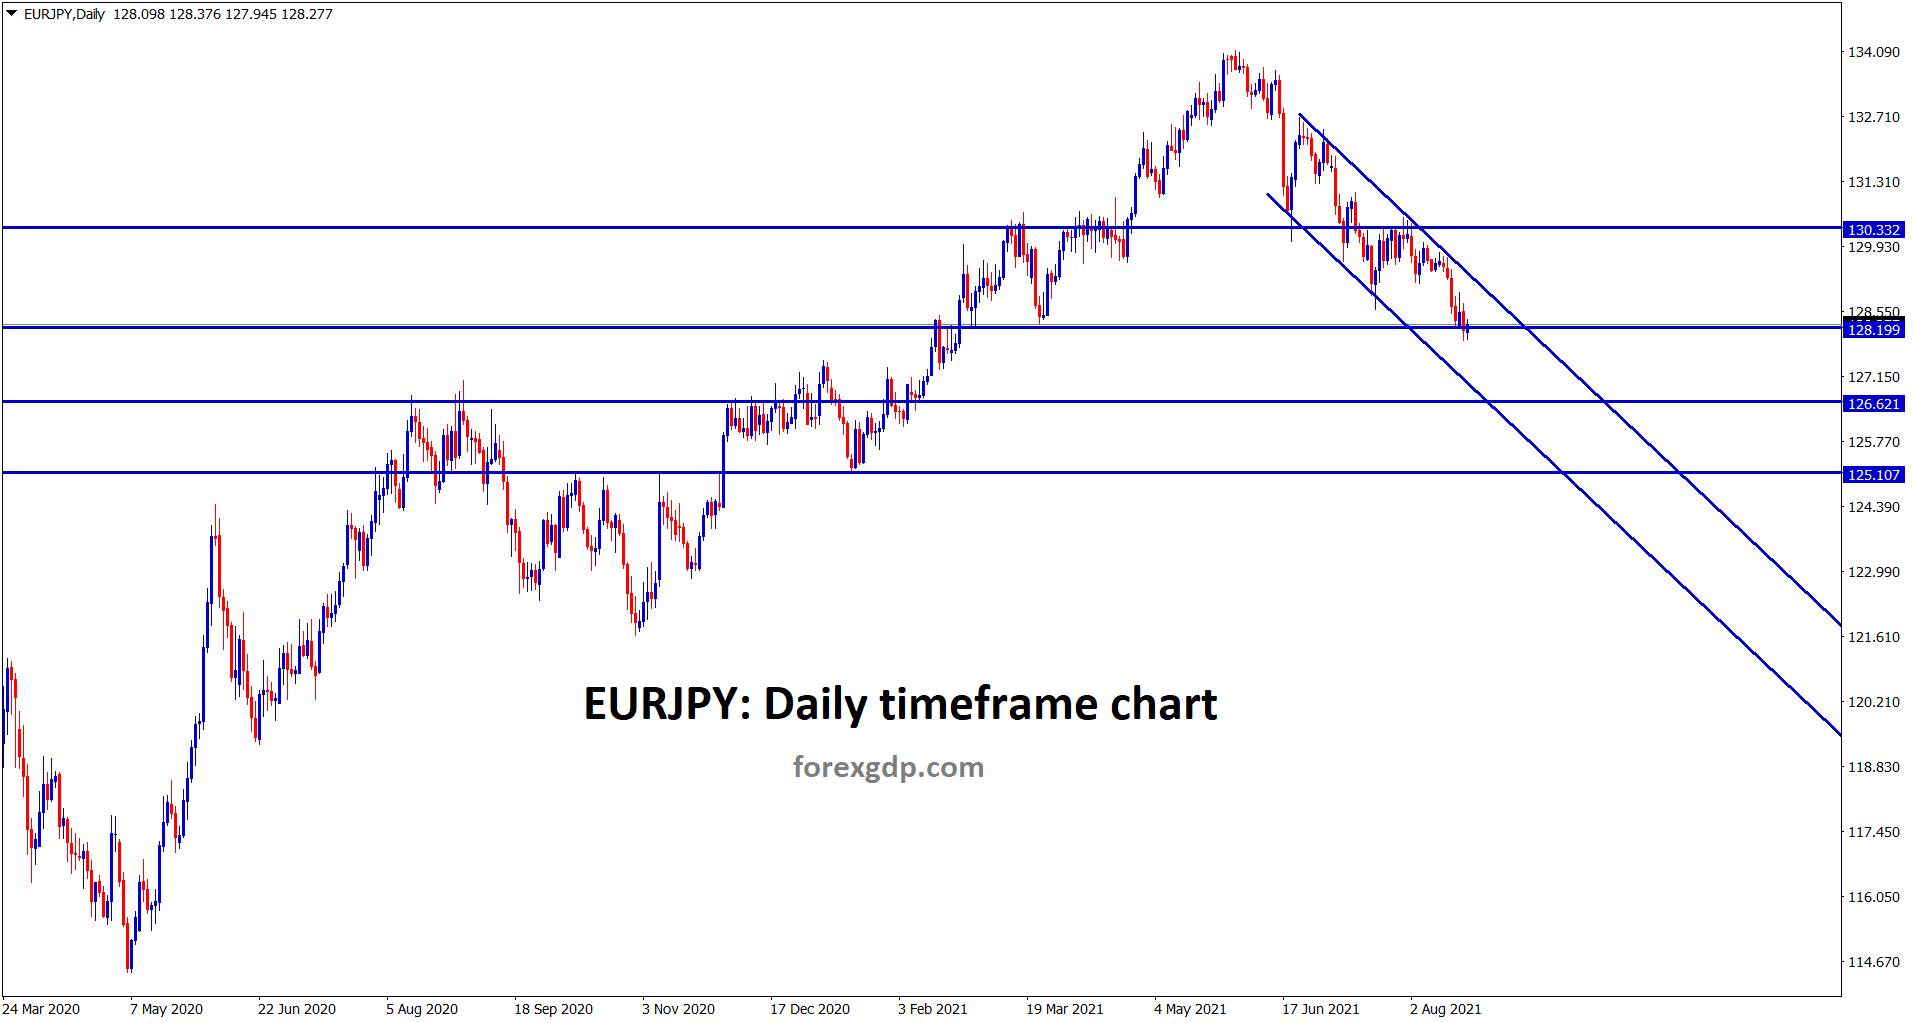 EURJPY is standing at the support and also moving in a descending channel